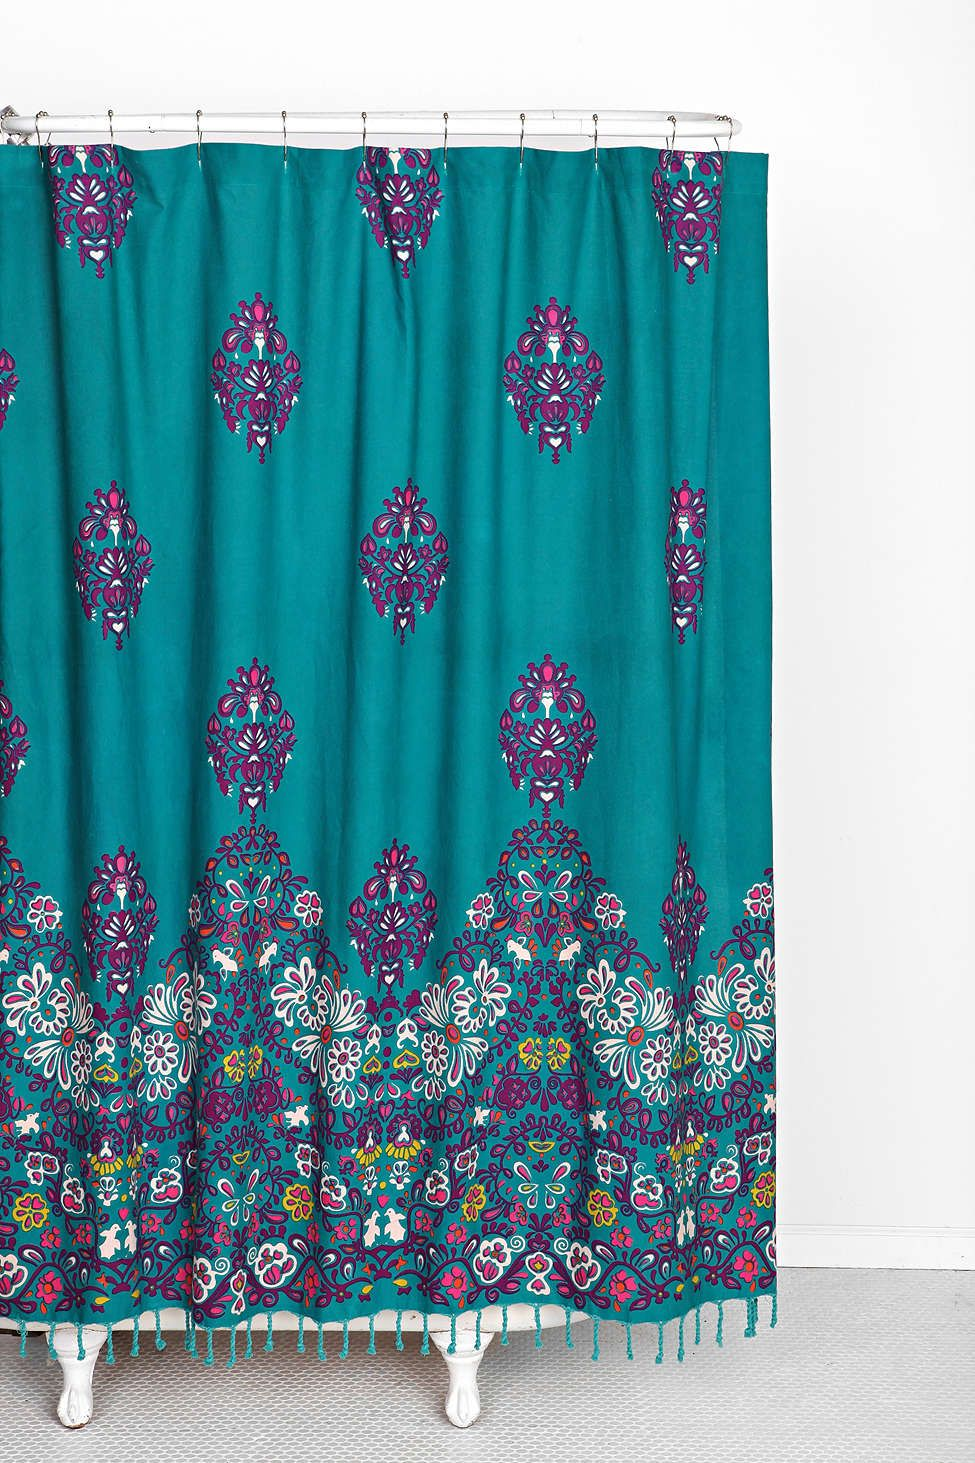 Peacock Shower Curtain Ideas